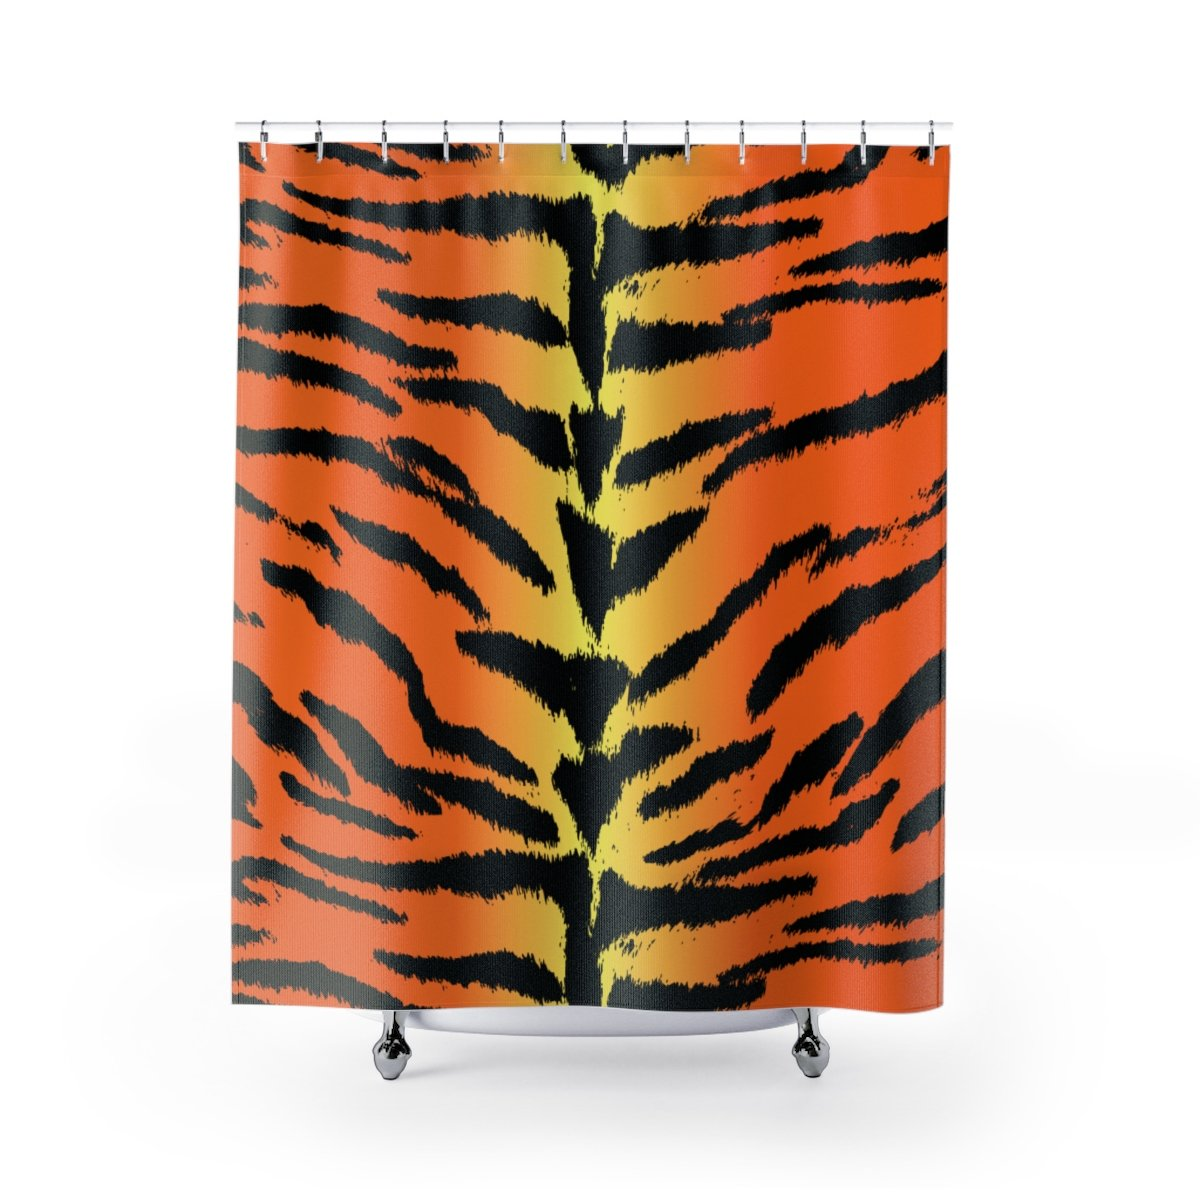 Bengal Tiger Shower Curtains-Home Decor-Printify-71x74-Pixie Cheetah